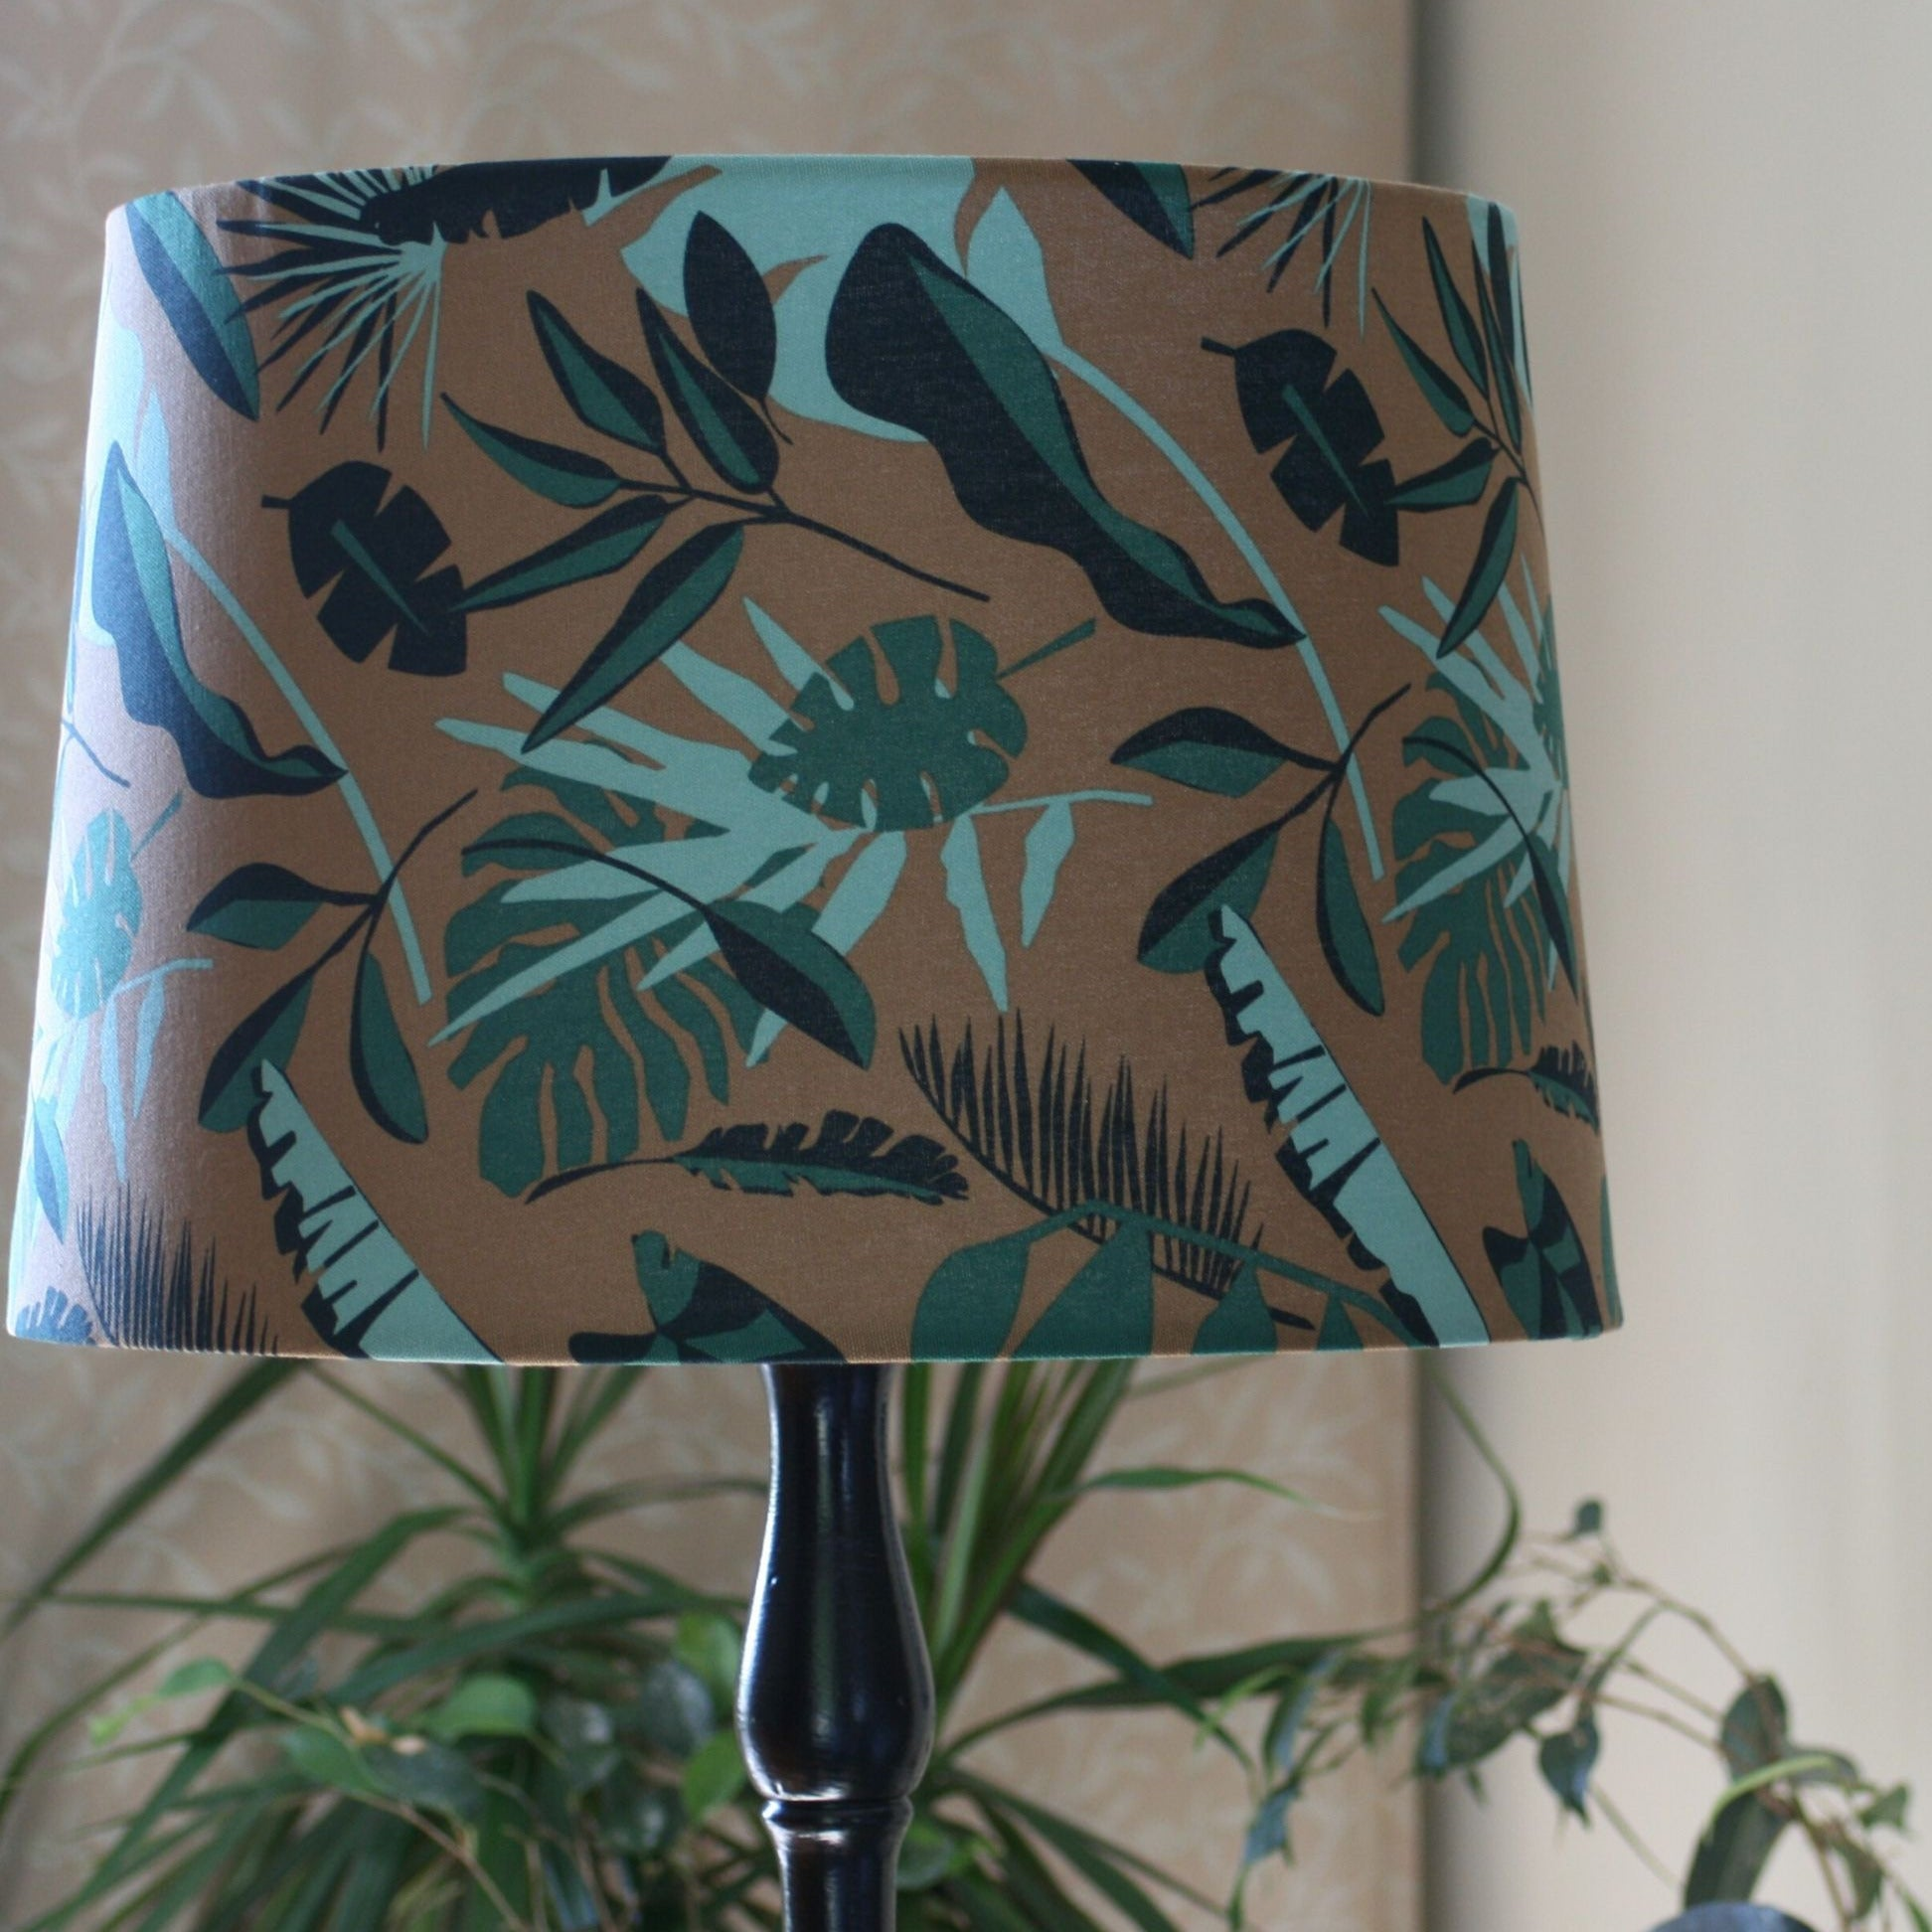 Green leaves and brown khaki fabric made into large tapered shade on a floor stand.